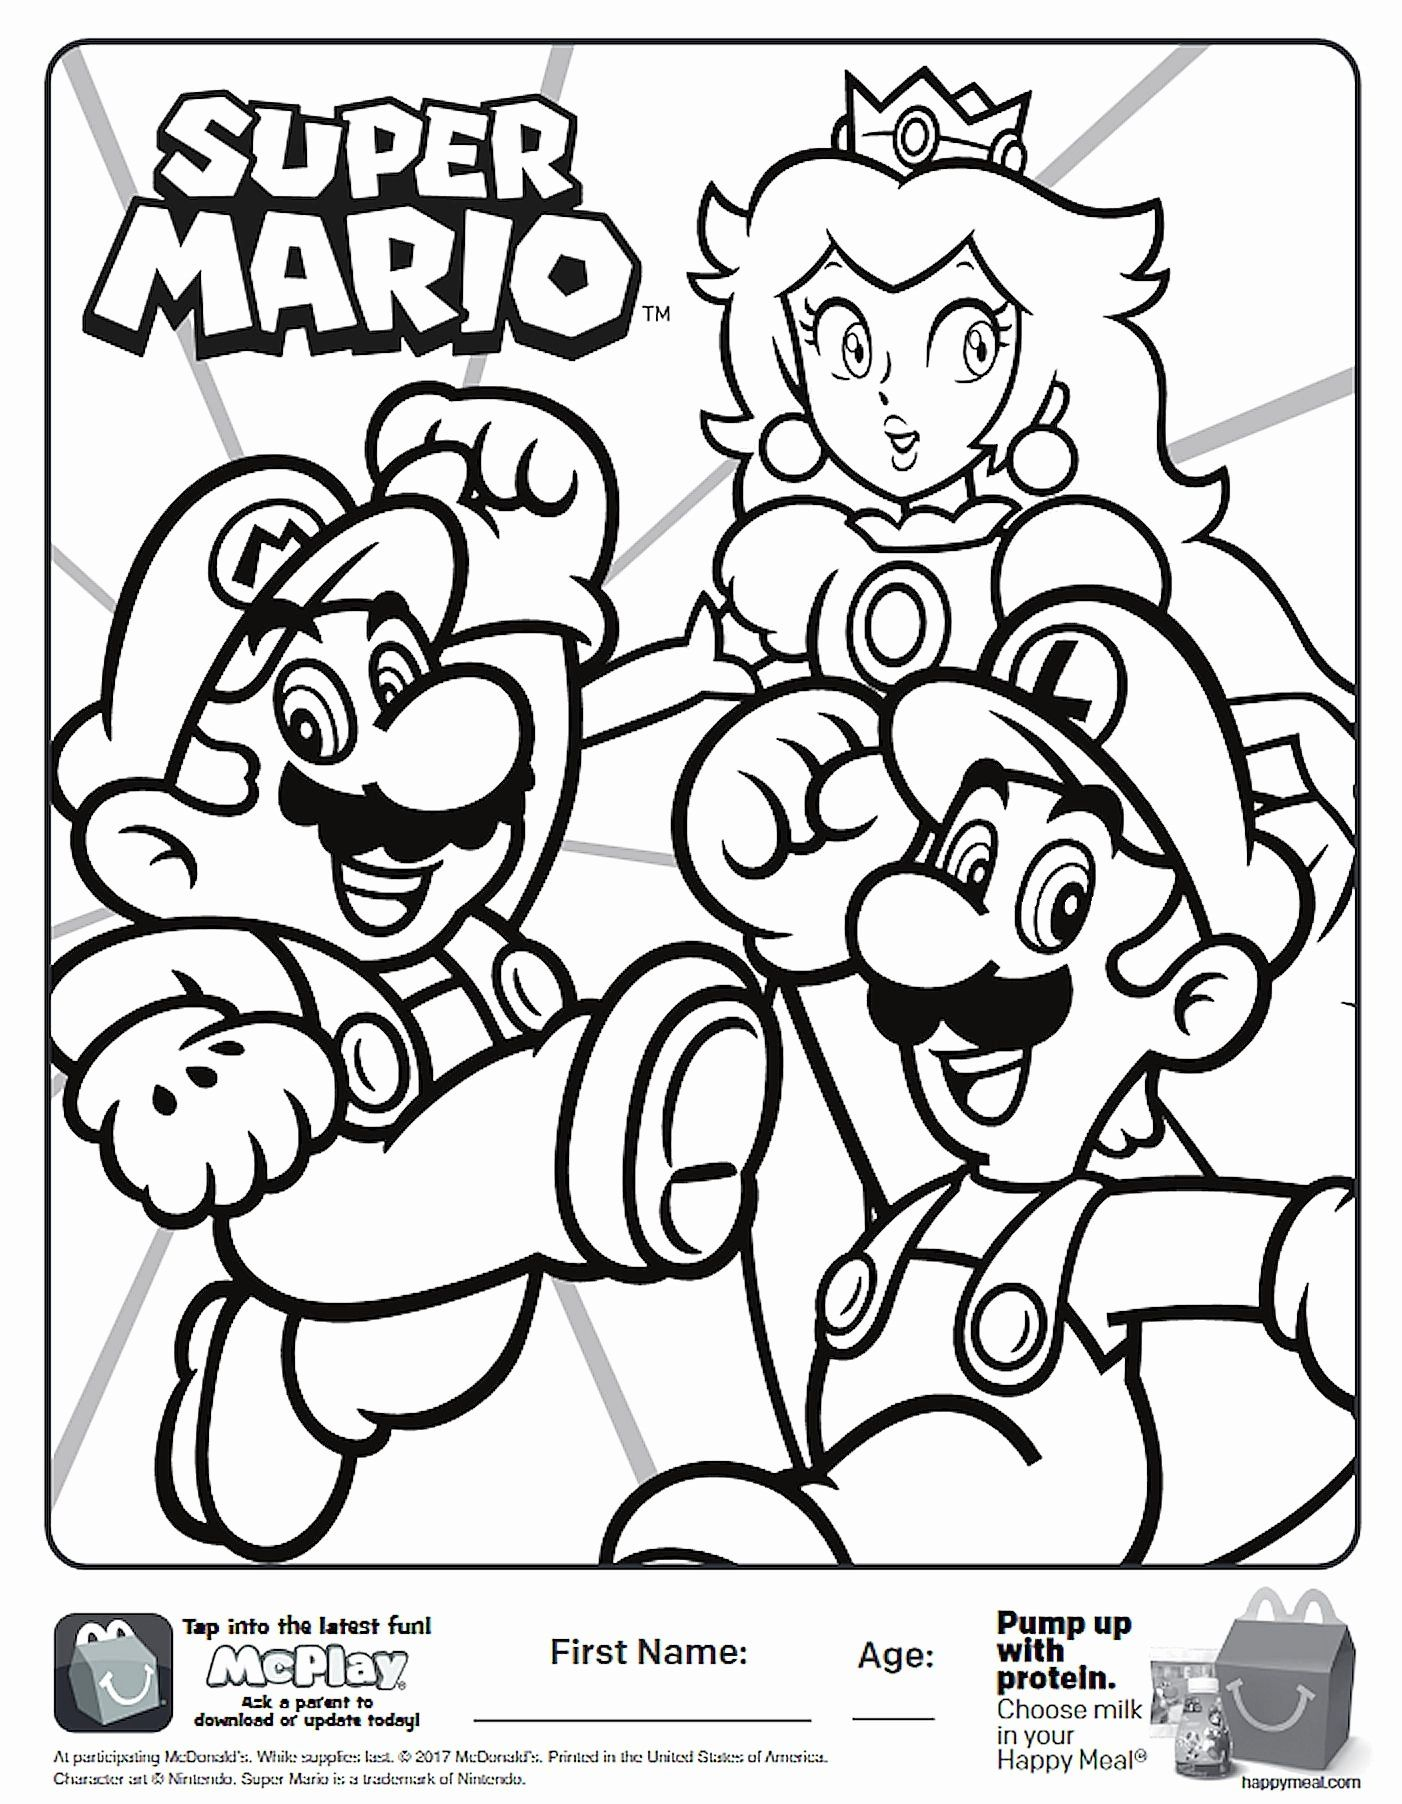 Super Mario Coloring Book Inspirational Here Is The Happy Meal Super Mario Coloring Pag Super Mario Coloring Pages Mario Coloring Pages Avengers Coloring Pages